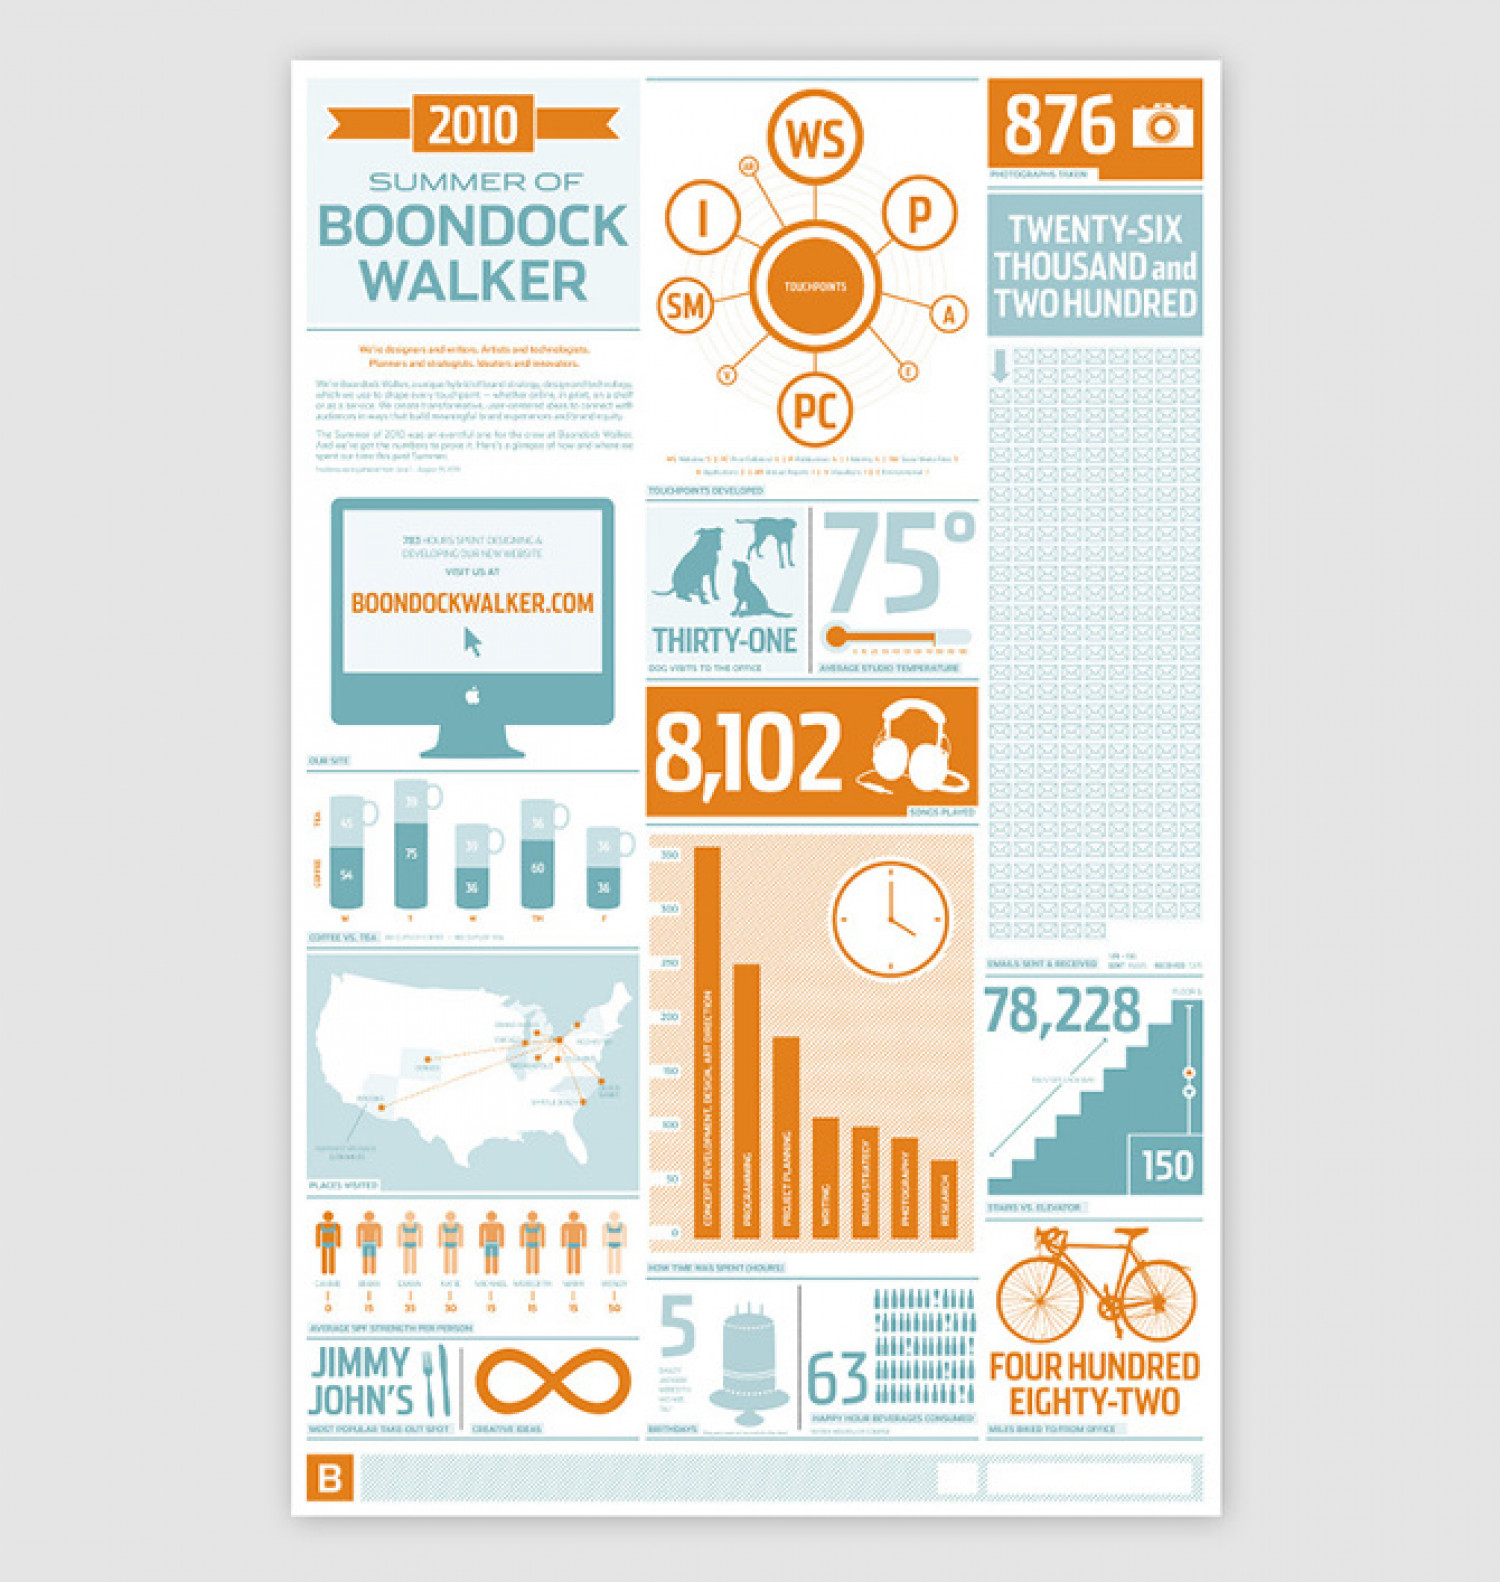 Summer of Boondock Walker Infographic